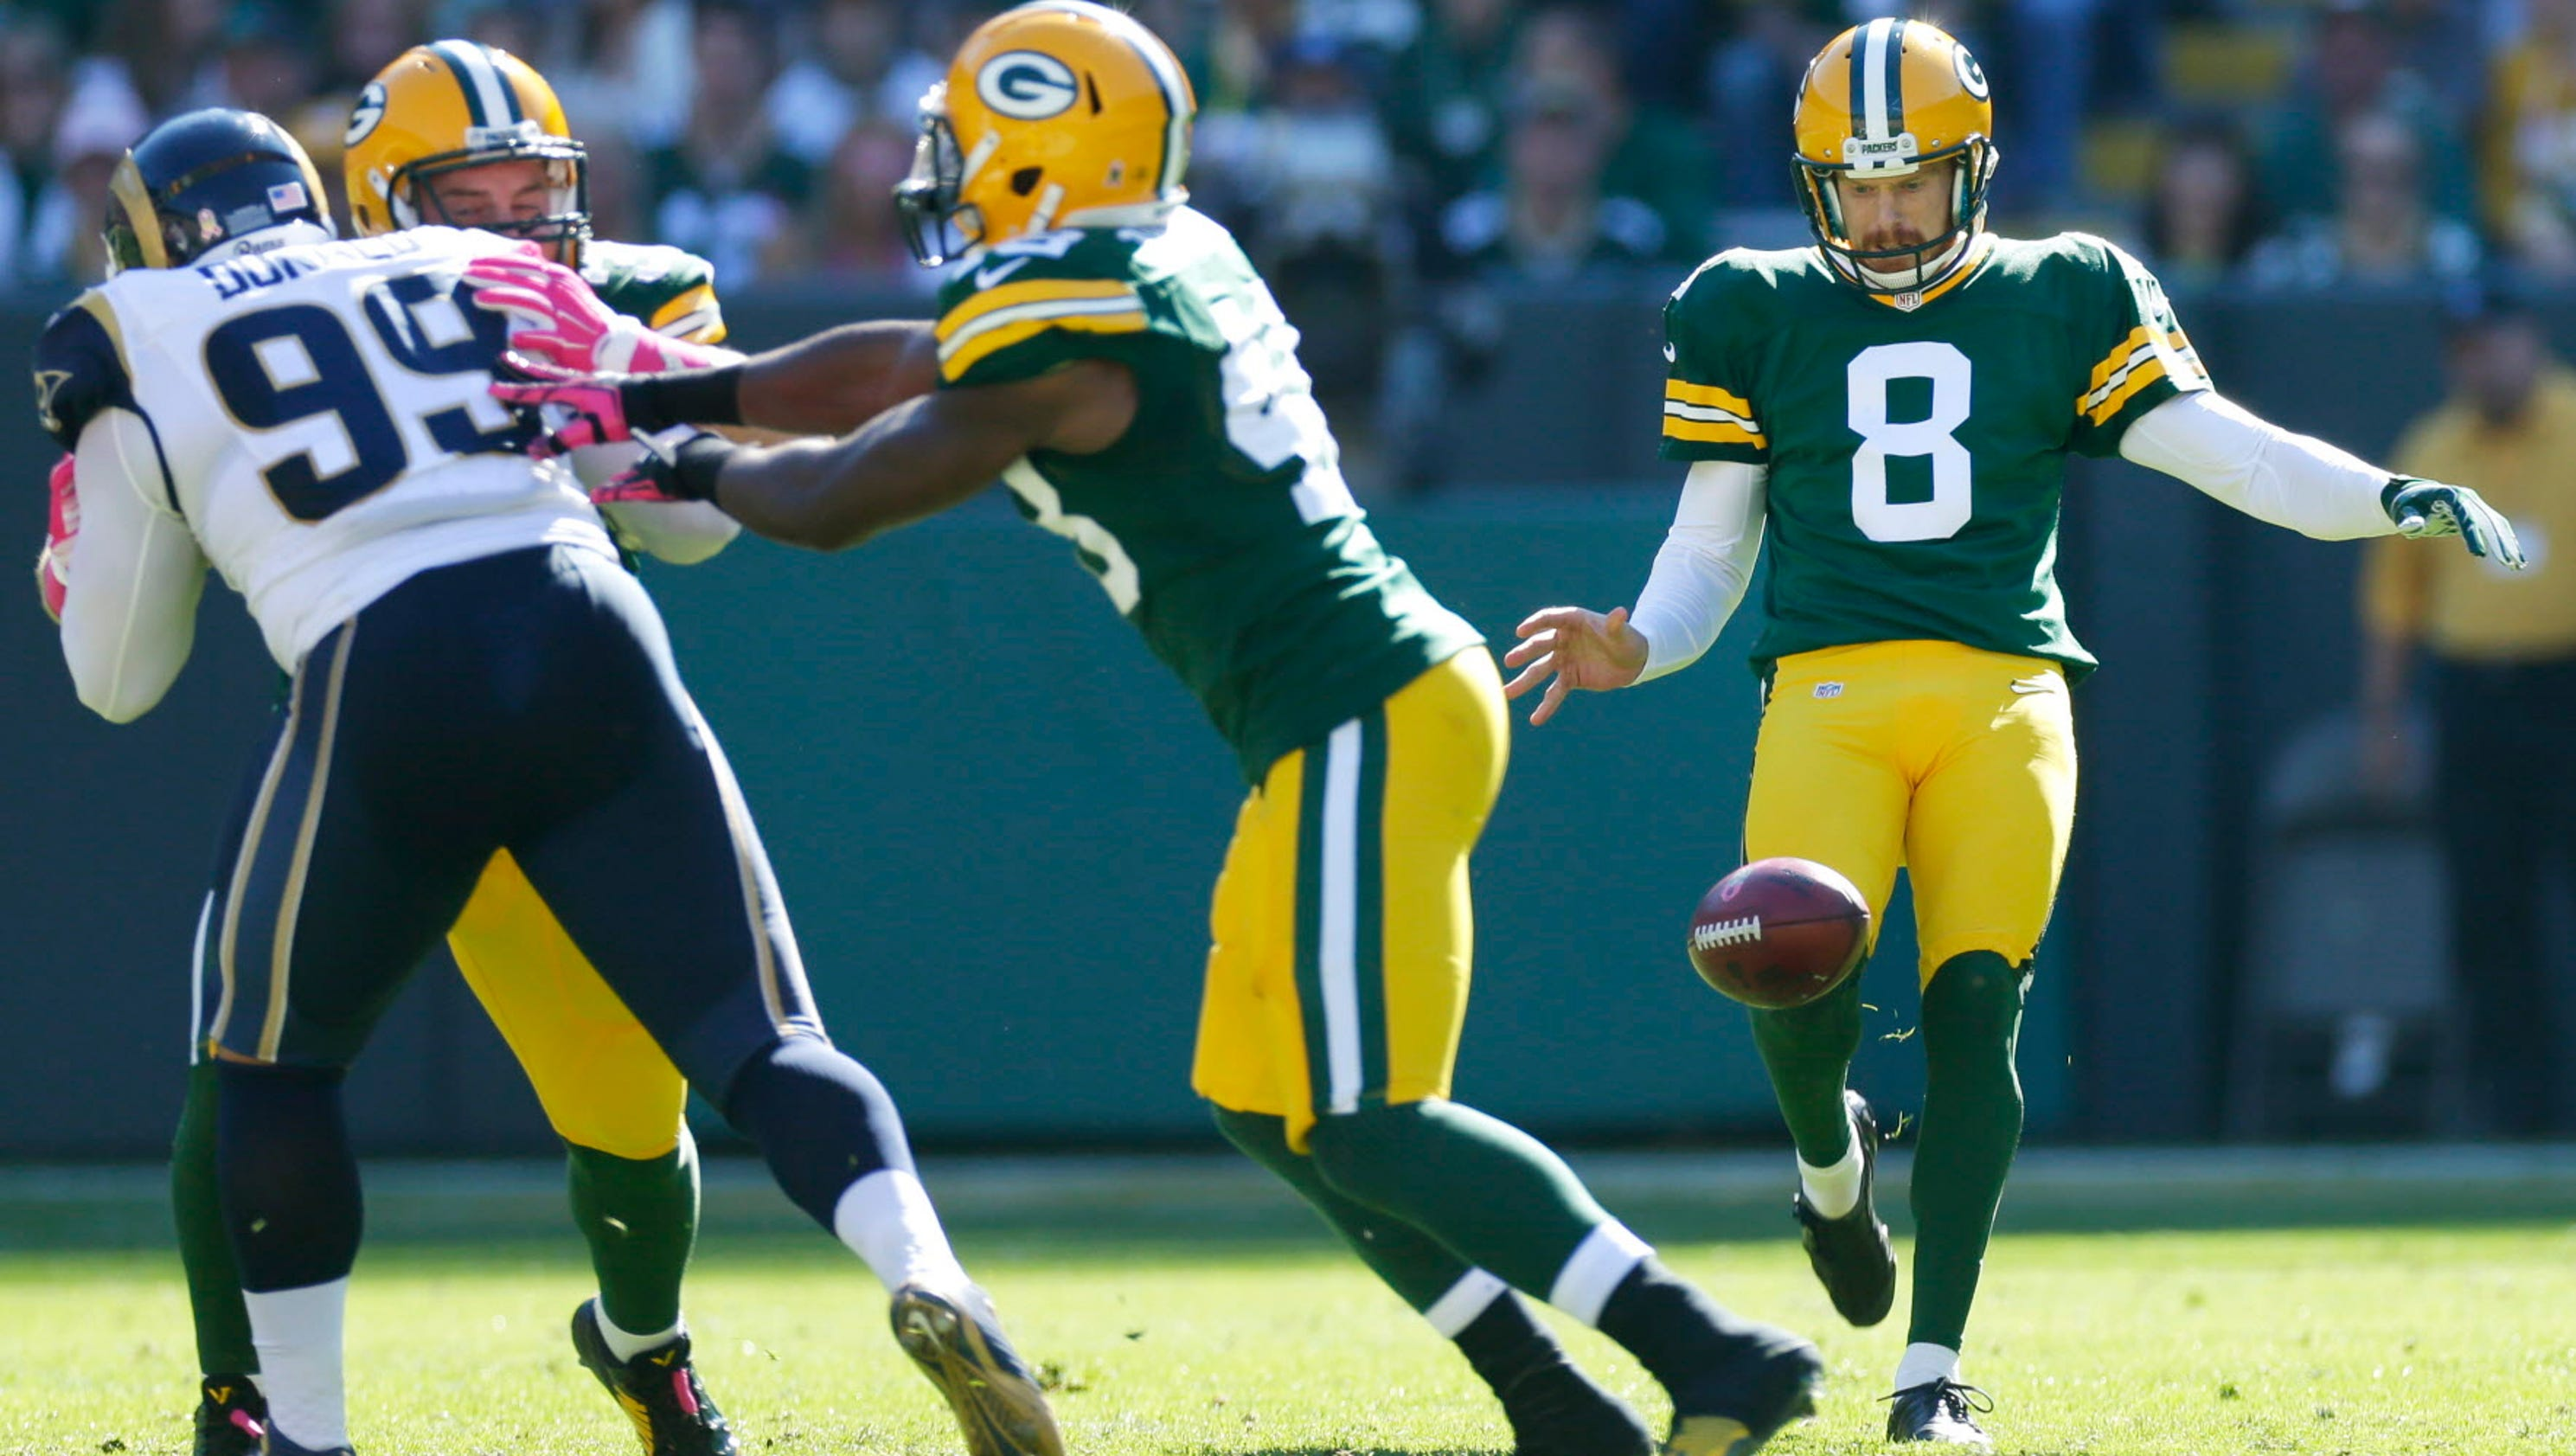 636609394474838277-mjs-packers-masthay.jpg-packers12